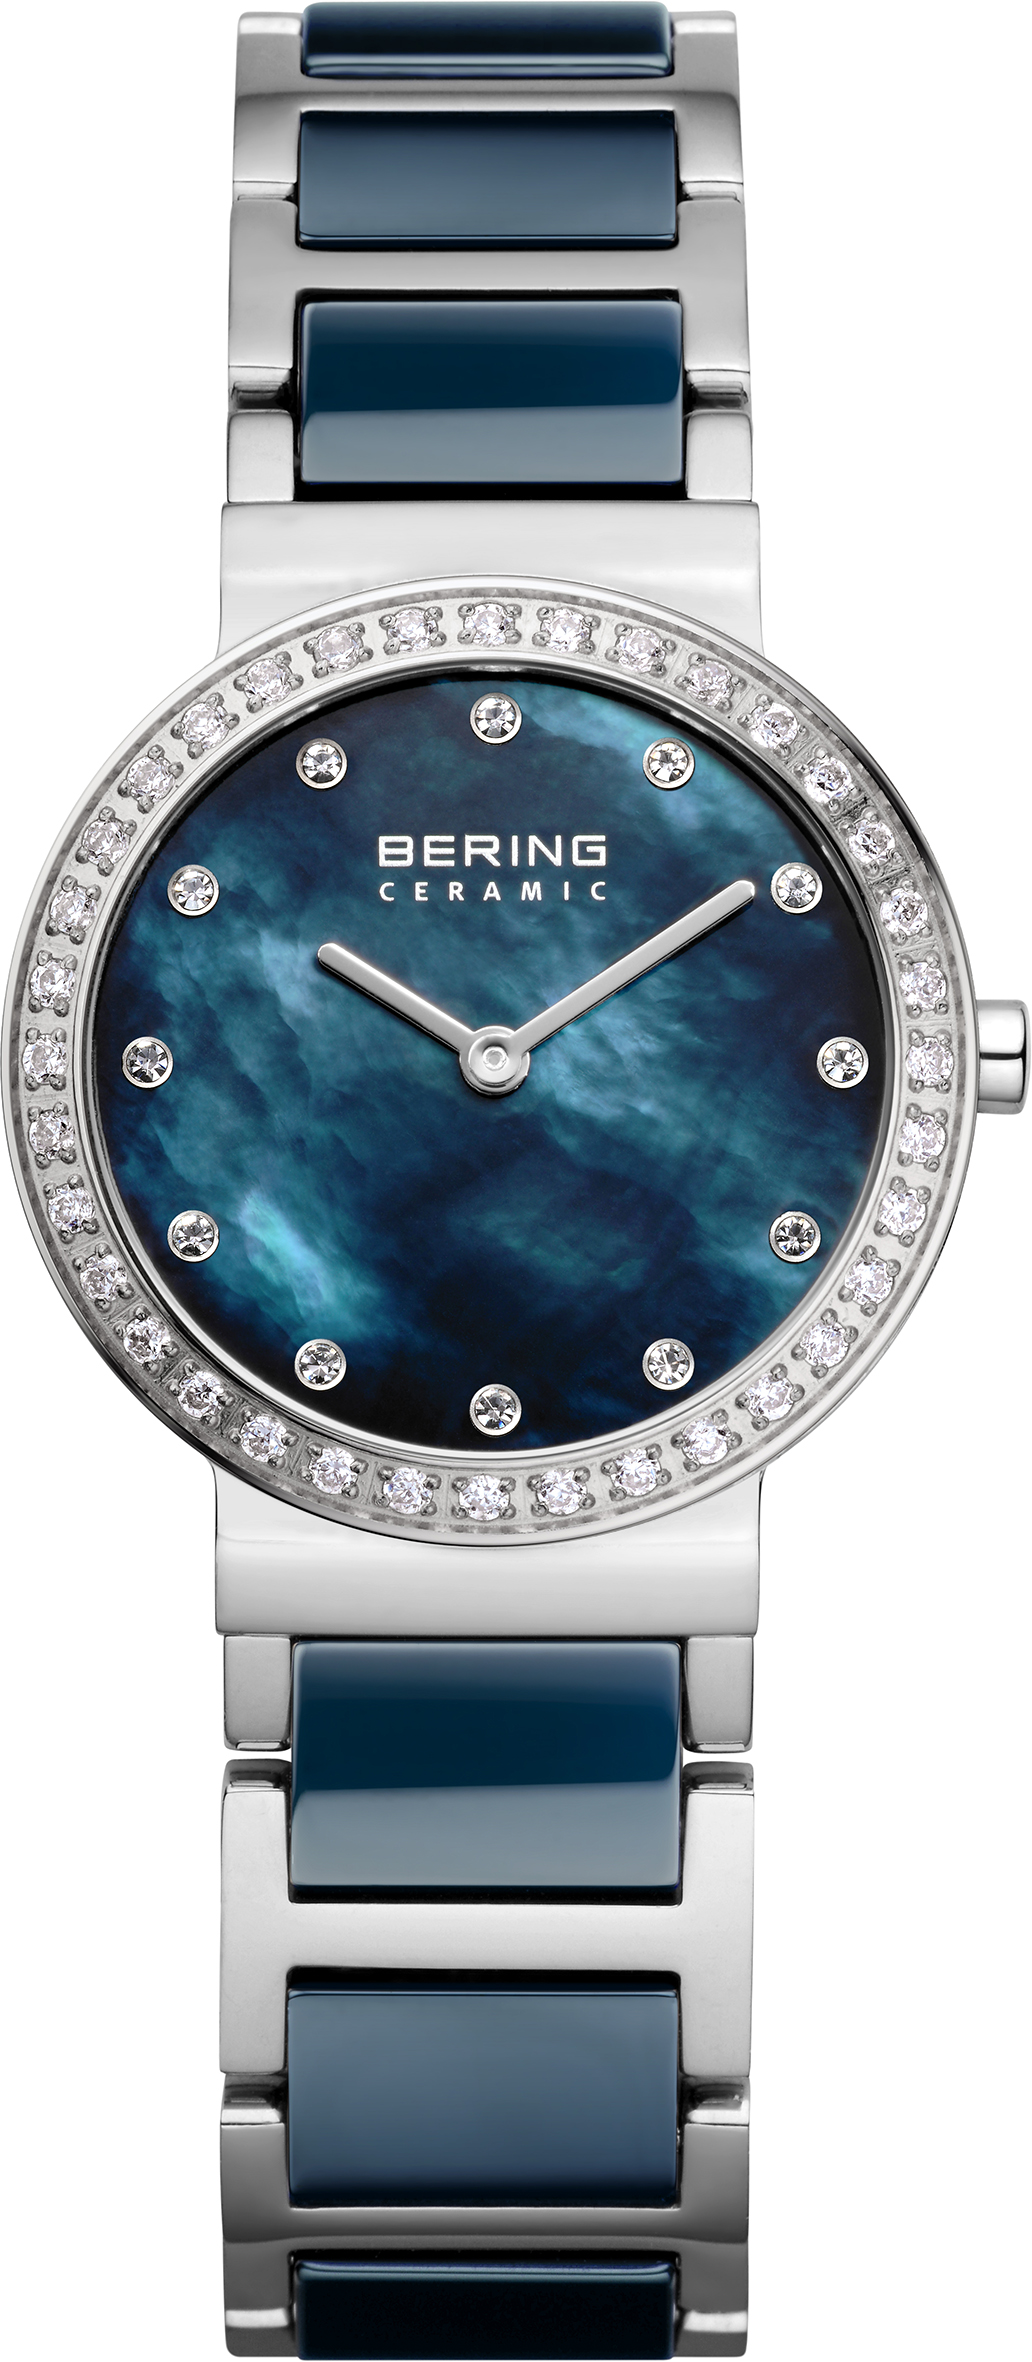 Bering Time blue ceramic ladies watch | JCK On Your Market